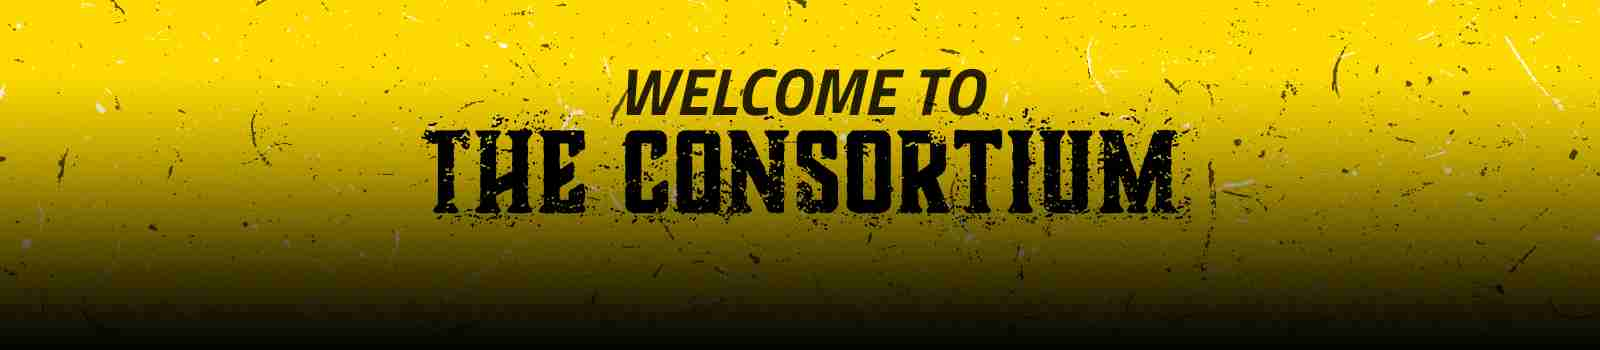 WELCOME TO THE CONSORTIUM